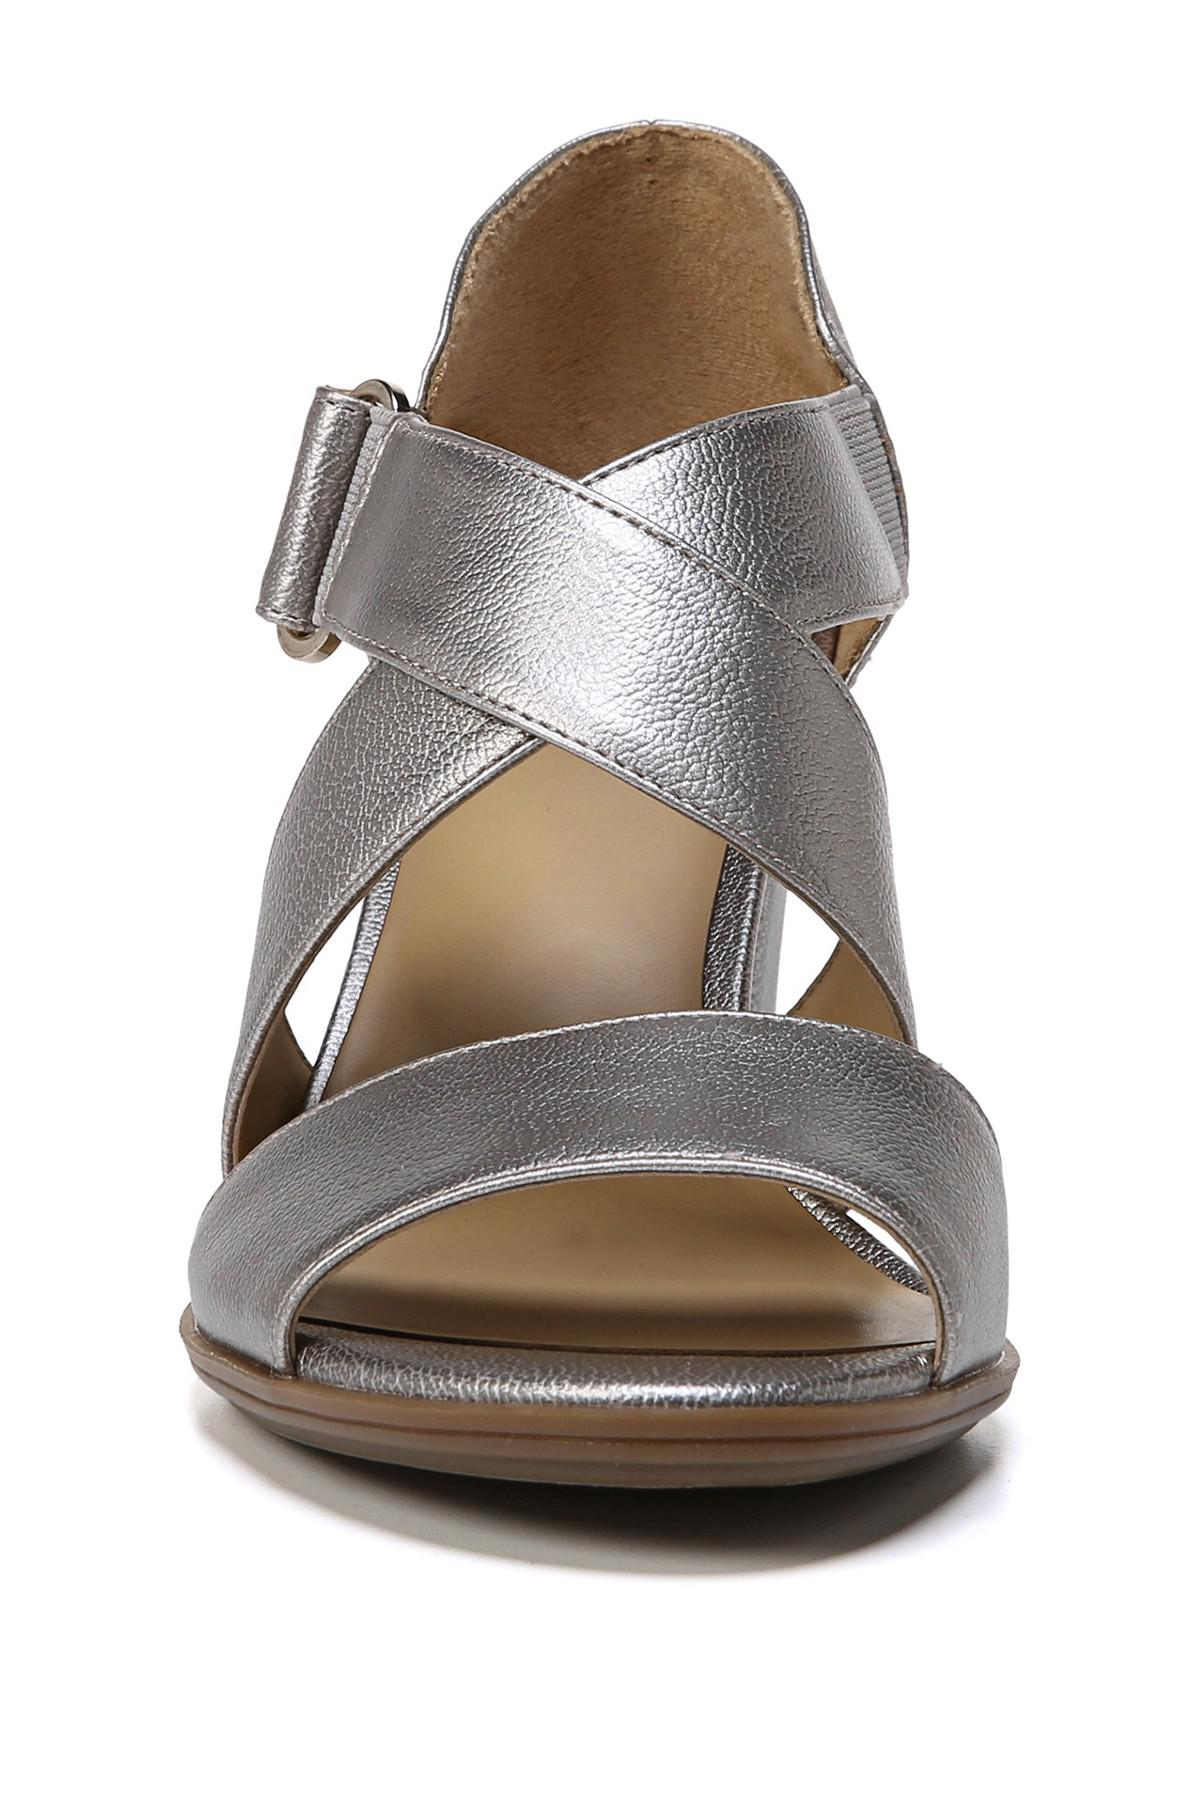 03917c5cdcdd Naturalizer - Metallic Lindy Sandal - Wide Width Available - Lyst. View  fullscreen